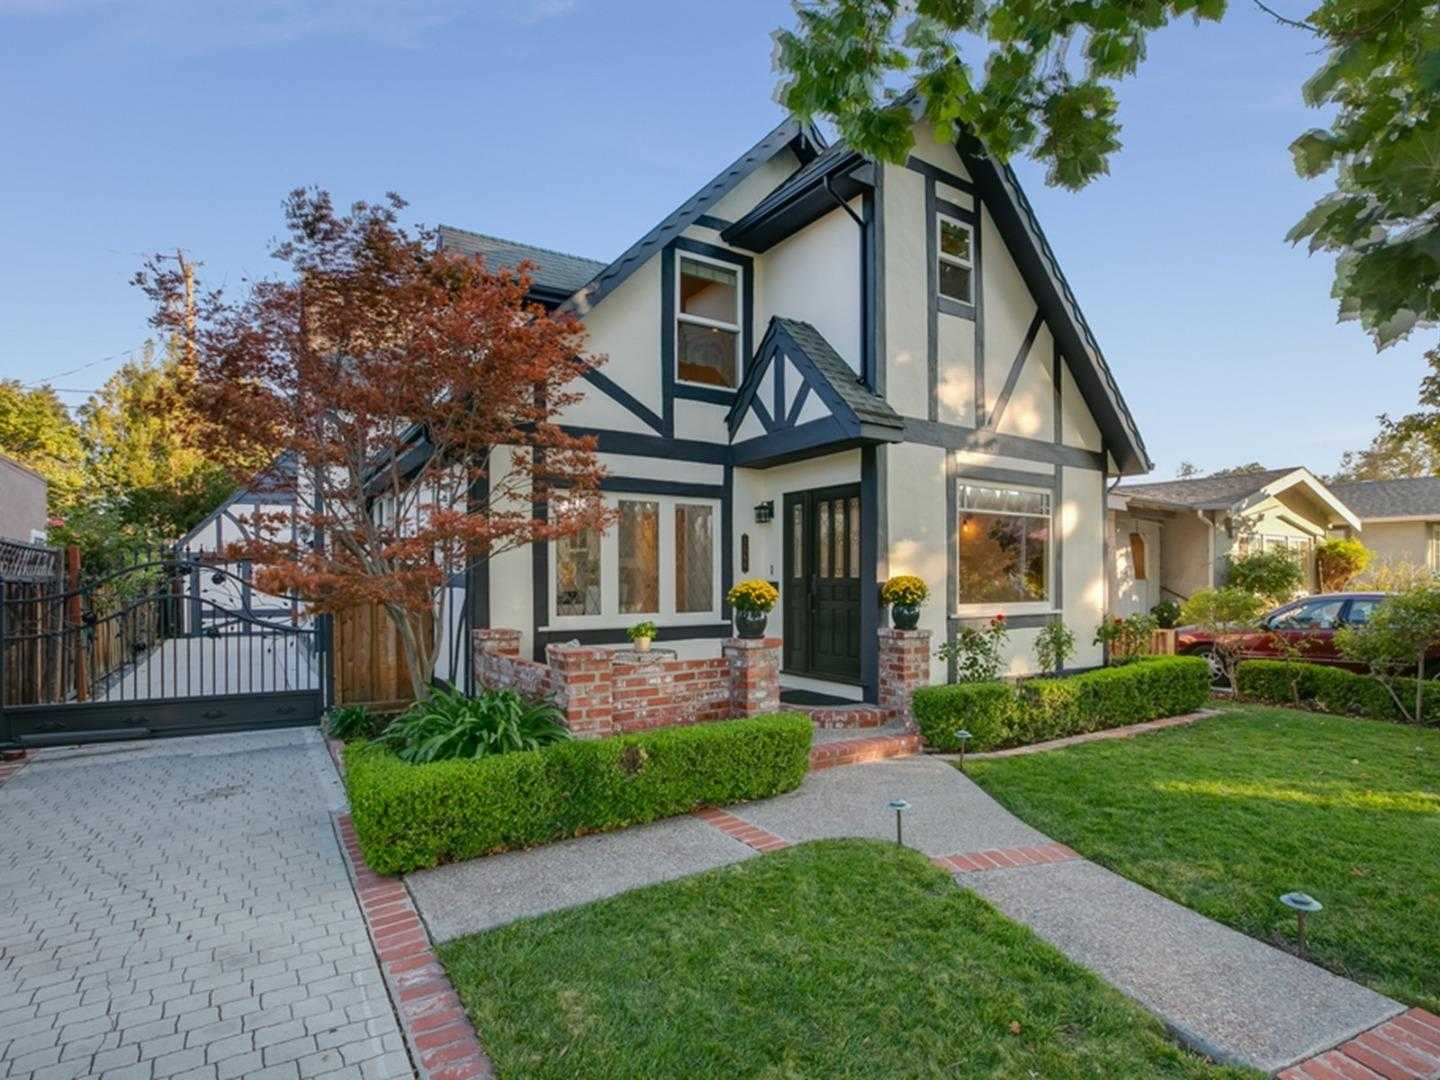 $1,575,000 - 4Br/3Ba -  for Sale in San Jose